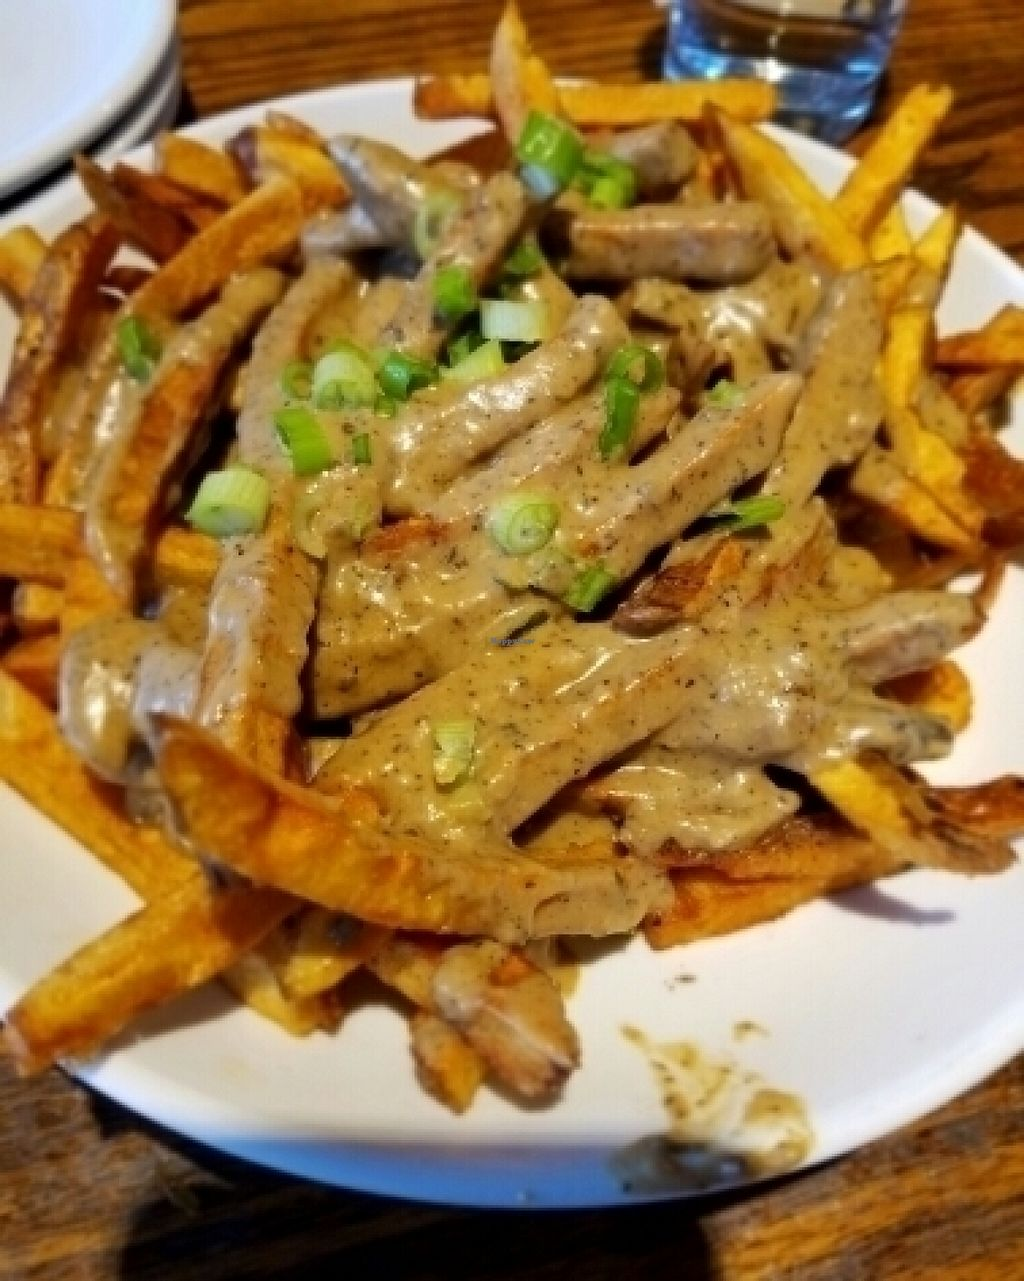 """Photo of Franktuary  by <a href=""""/members/profile/kennethbass"""">kennethbass</a> <br/>Vegan poutine <br/> July 30, 2016  - <a href='/contact/abuse/image/29464/163510'>Report</a>"""